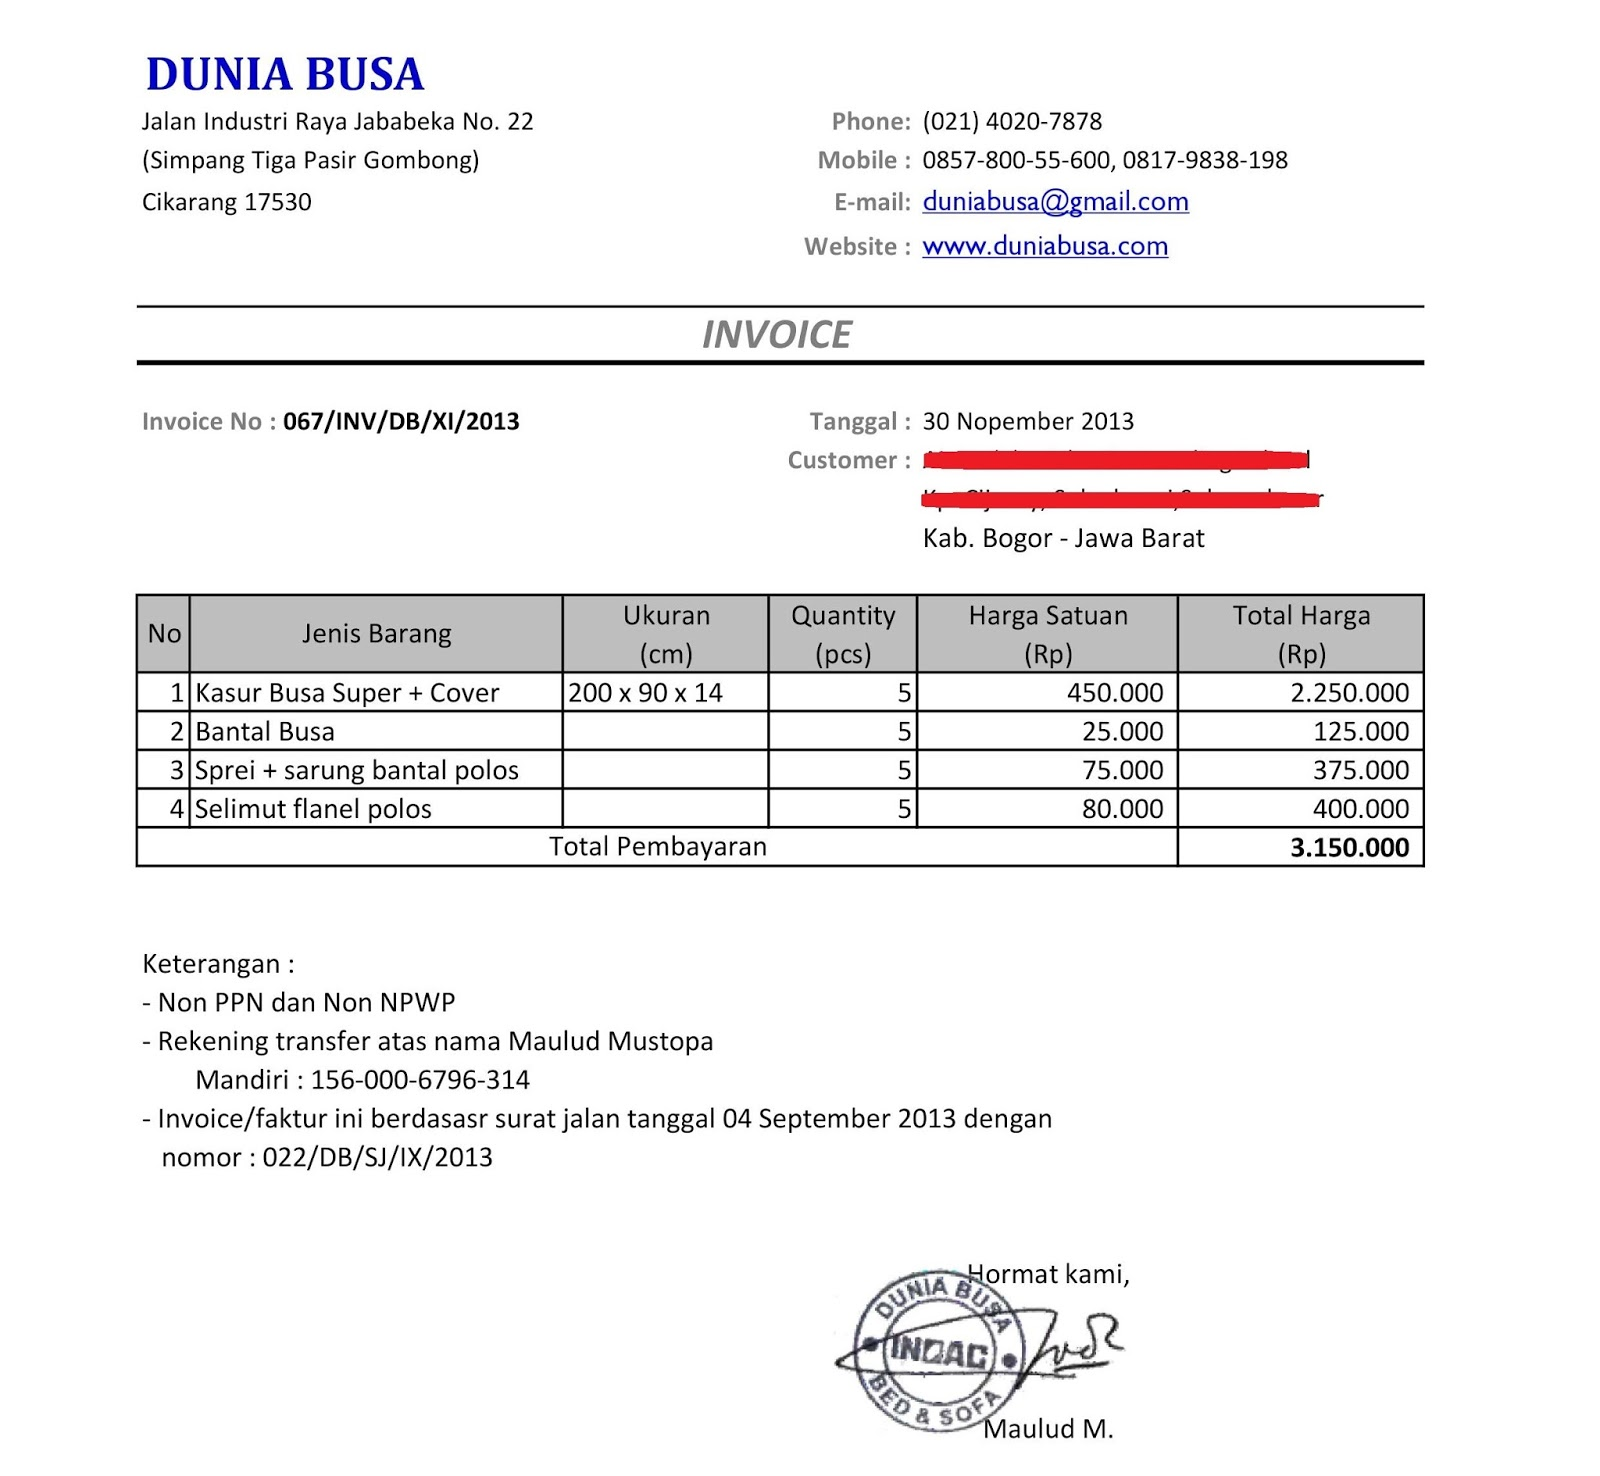 Aldiablosus  Splendid Free Invoice Online  Create Invoice Online  Invoice Template  With Hot Contoh Format Invoice Atau Surat Tagihan  Brankas Arsip  Free Invoice Online With Cool Blank Printable Invoice Template Free Also Lawn Service Invoice Template In Addition Invoice Book Printing And Single Invoice Finance As Well As Ar Invoice Additionally Commercial Invoice Example From Sklepco With Aldiablosus  Hot Free Invoice Online  Create Invoice Online  Invoice Template  With Cool Contoh Format Invoice Atau Surat Tagihan  Brankas Arsip  Free Invoice Online And Splendid Blank Printable Invoice Template Free Also Lawn Service Invoice Template In Addition Invoice Book Printing From Sklepco